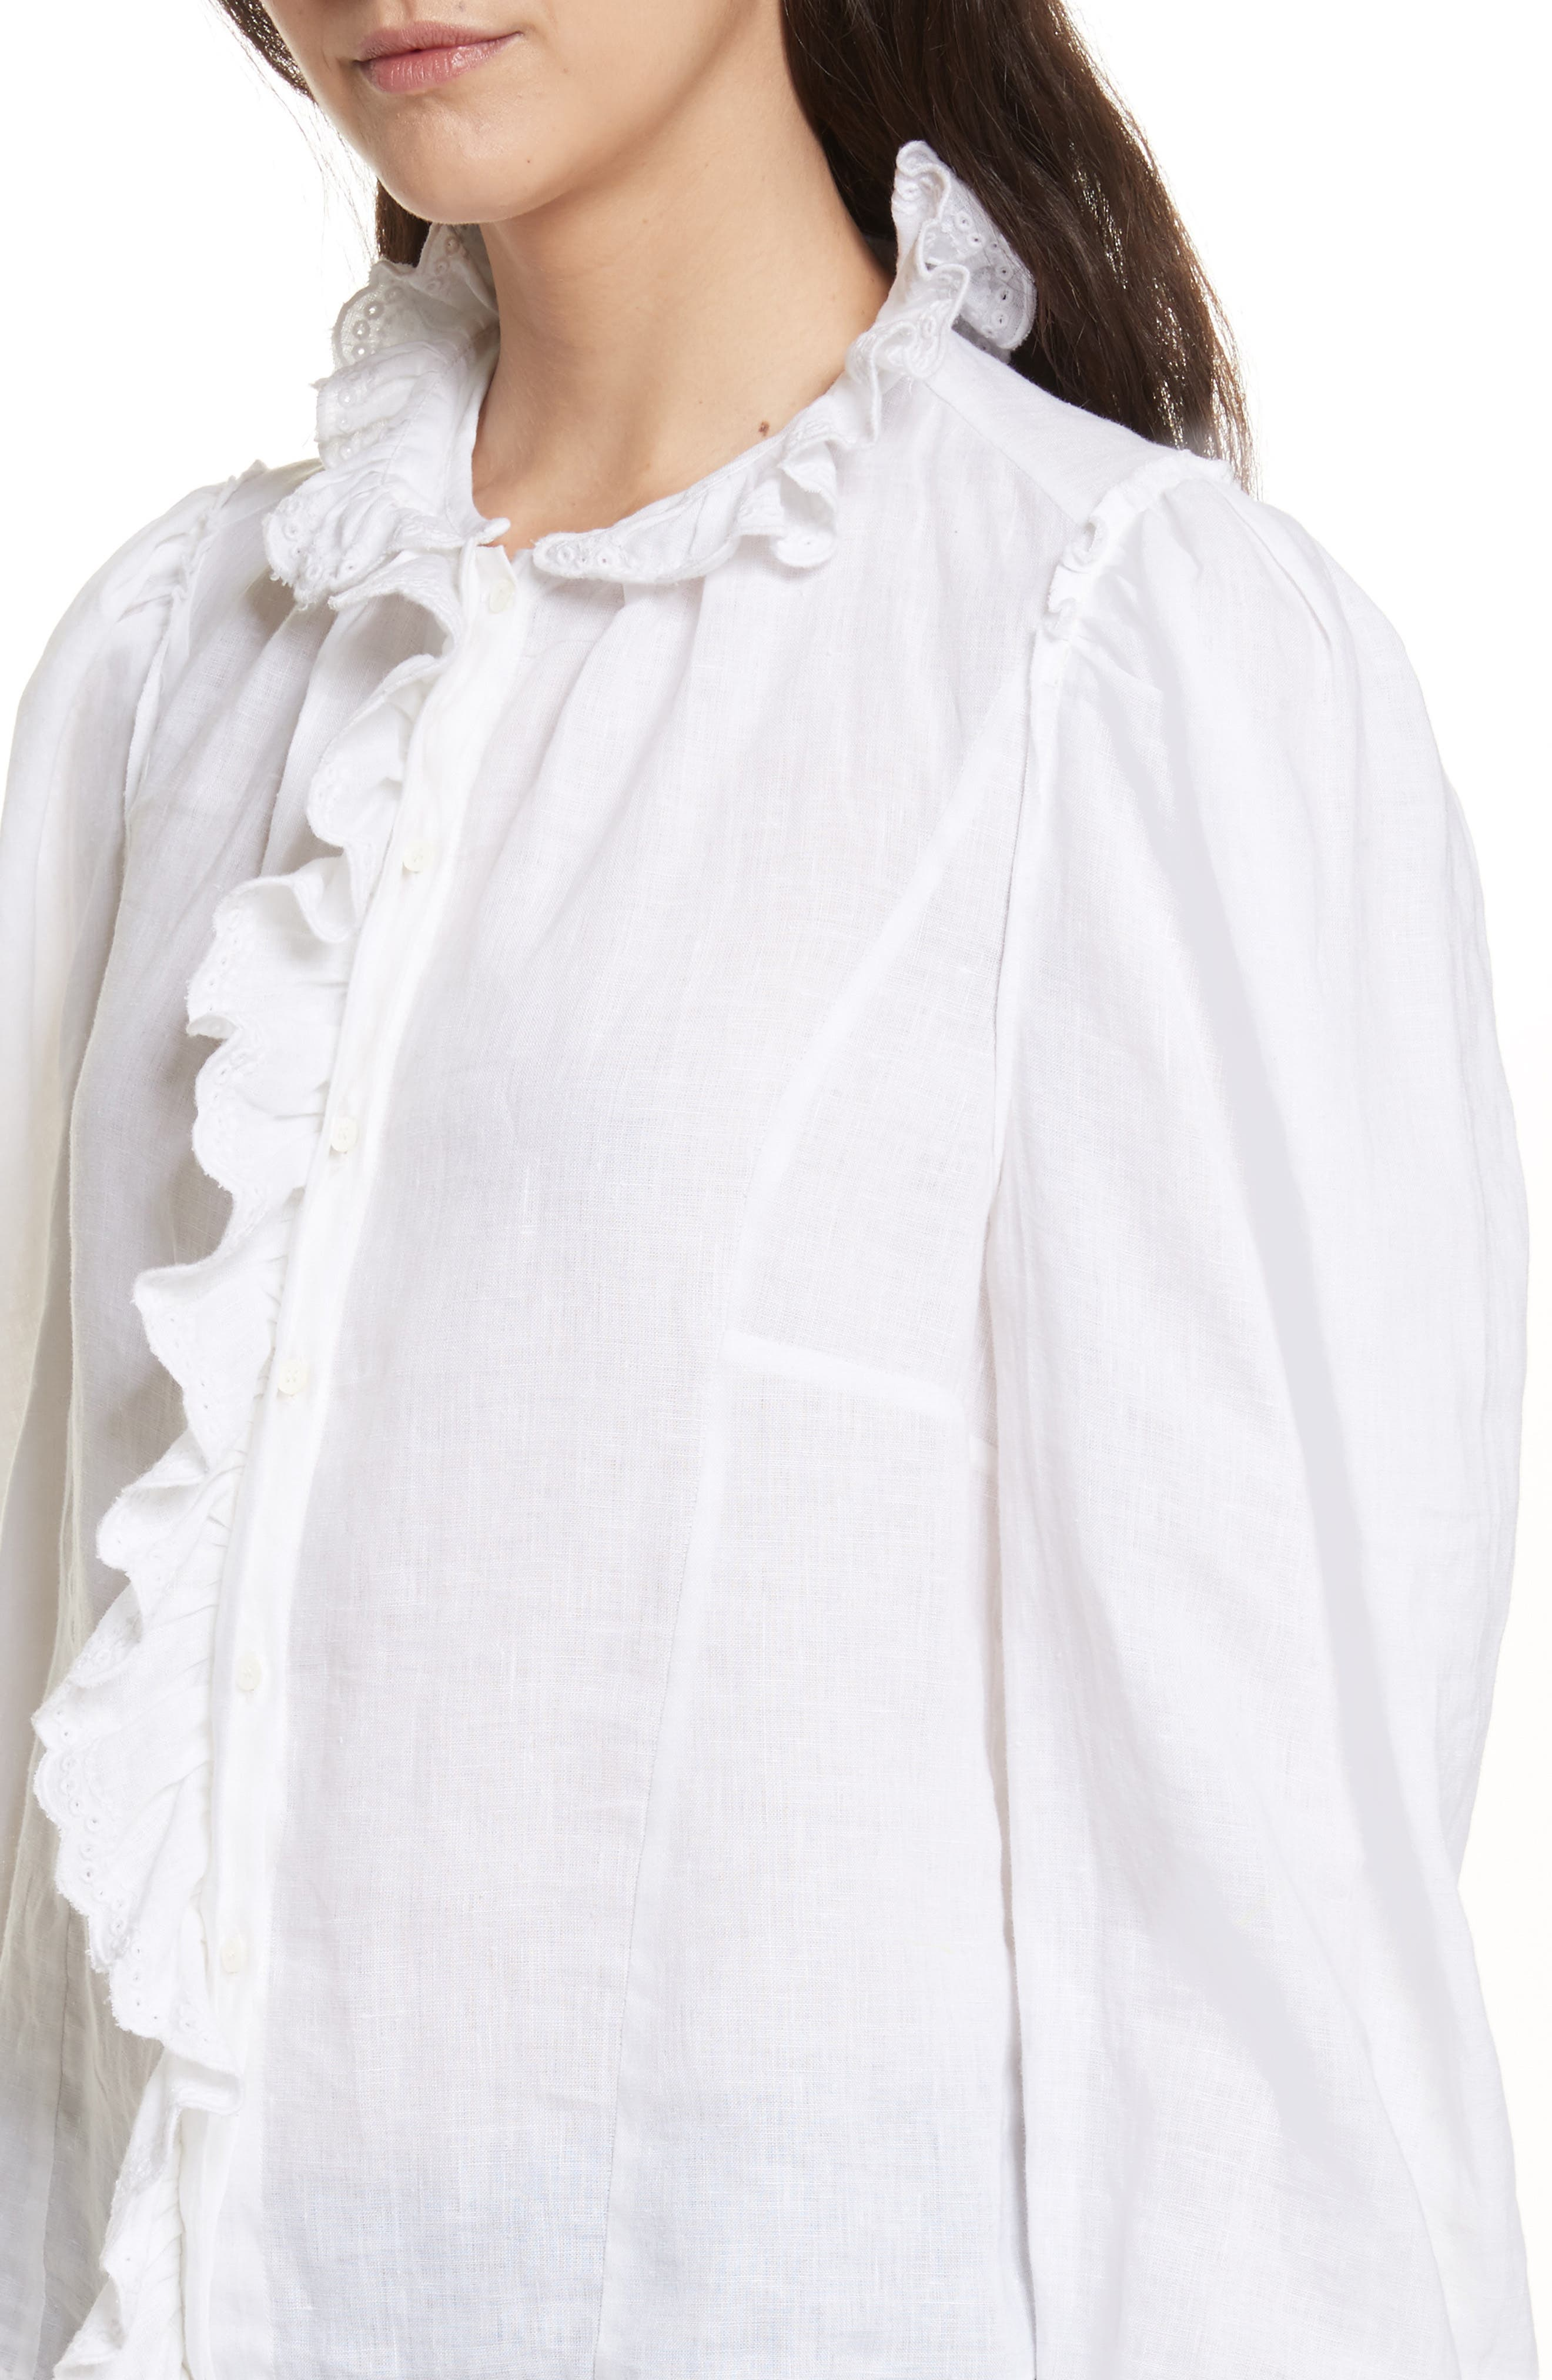 Isabel Marant Étoile Tauren Broderie Linen Shirt,                             Alternate thumbnail 4, color,                             White